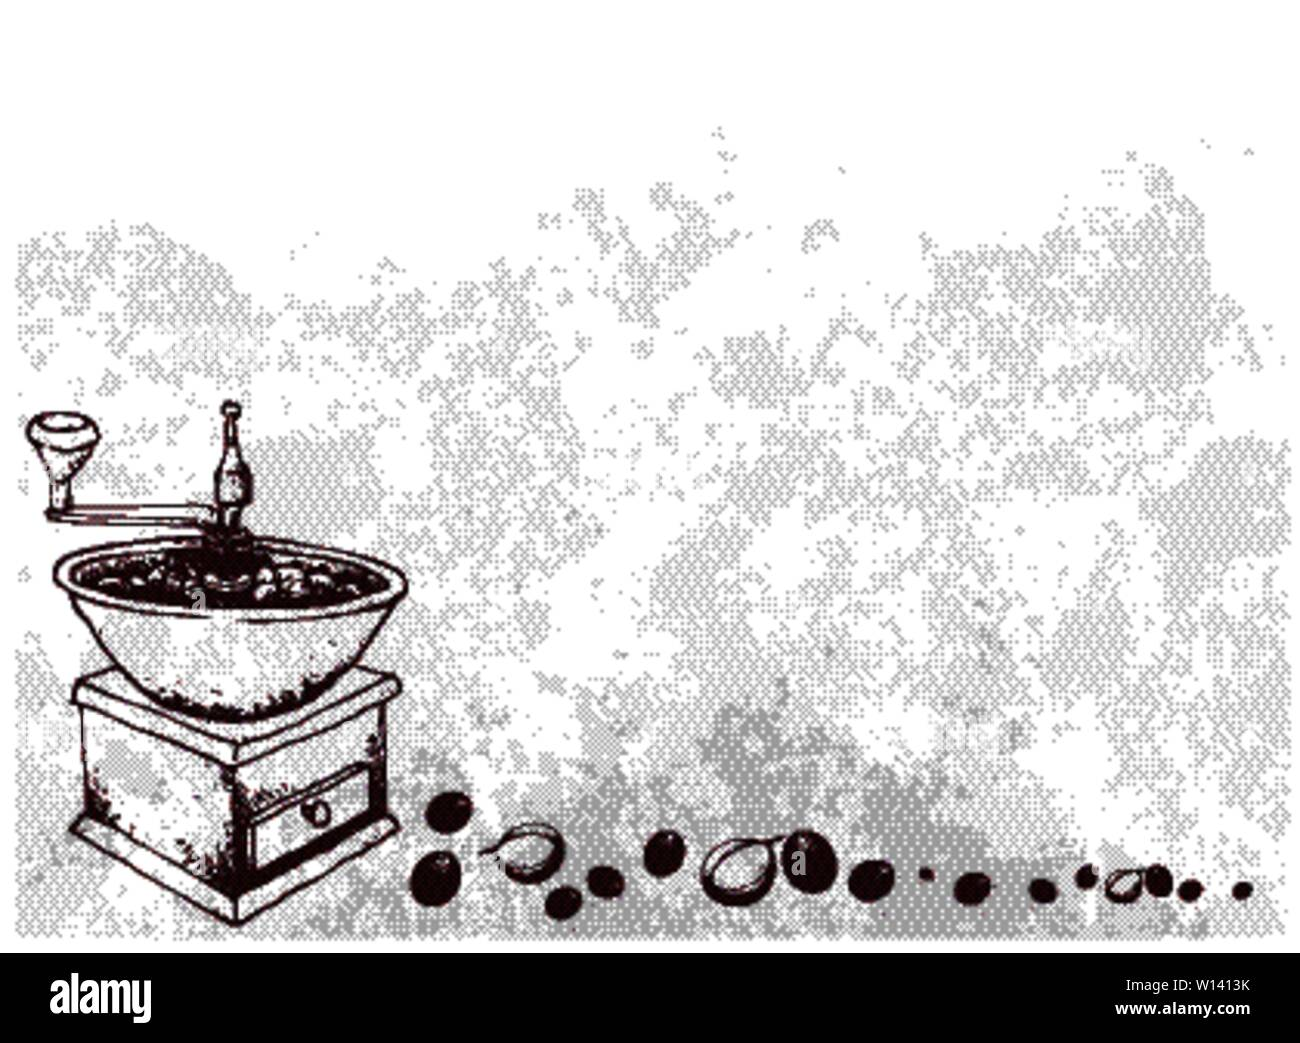 Illustration Hand Drawn Sketch of Roasted Coffee Beans with Traditional Manual Coffee Grinder. Stock Vector